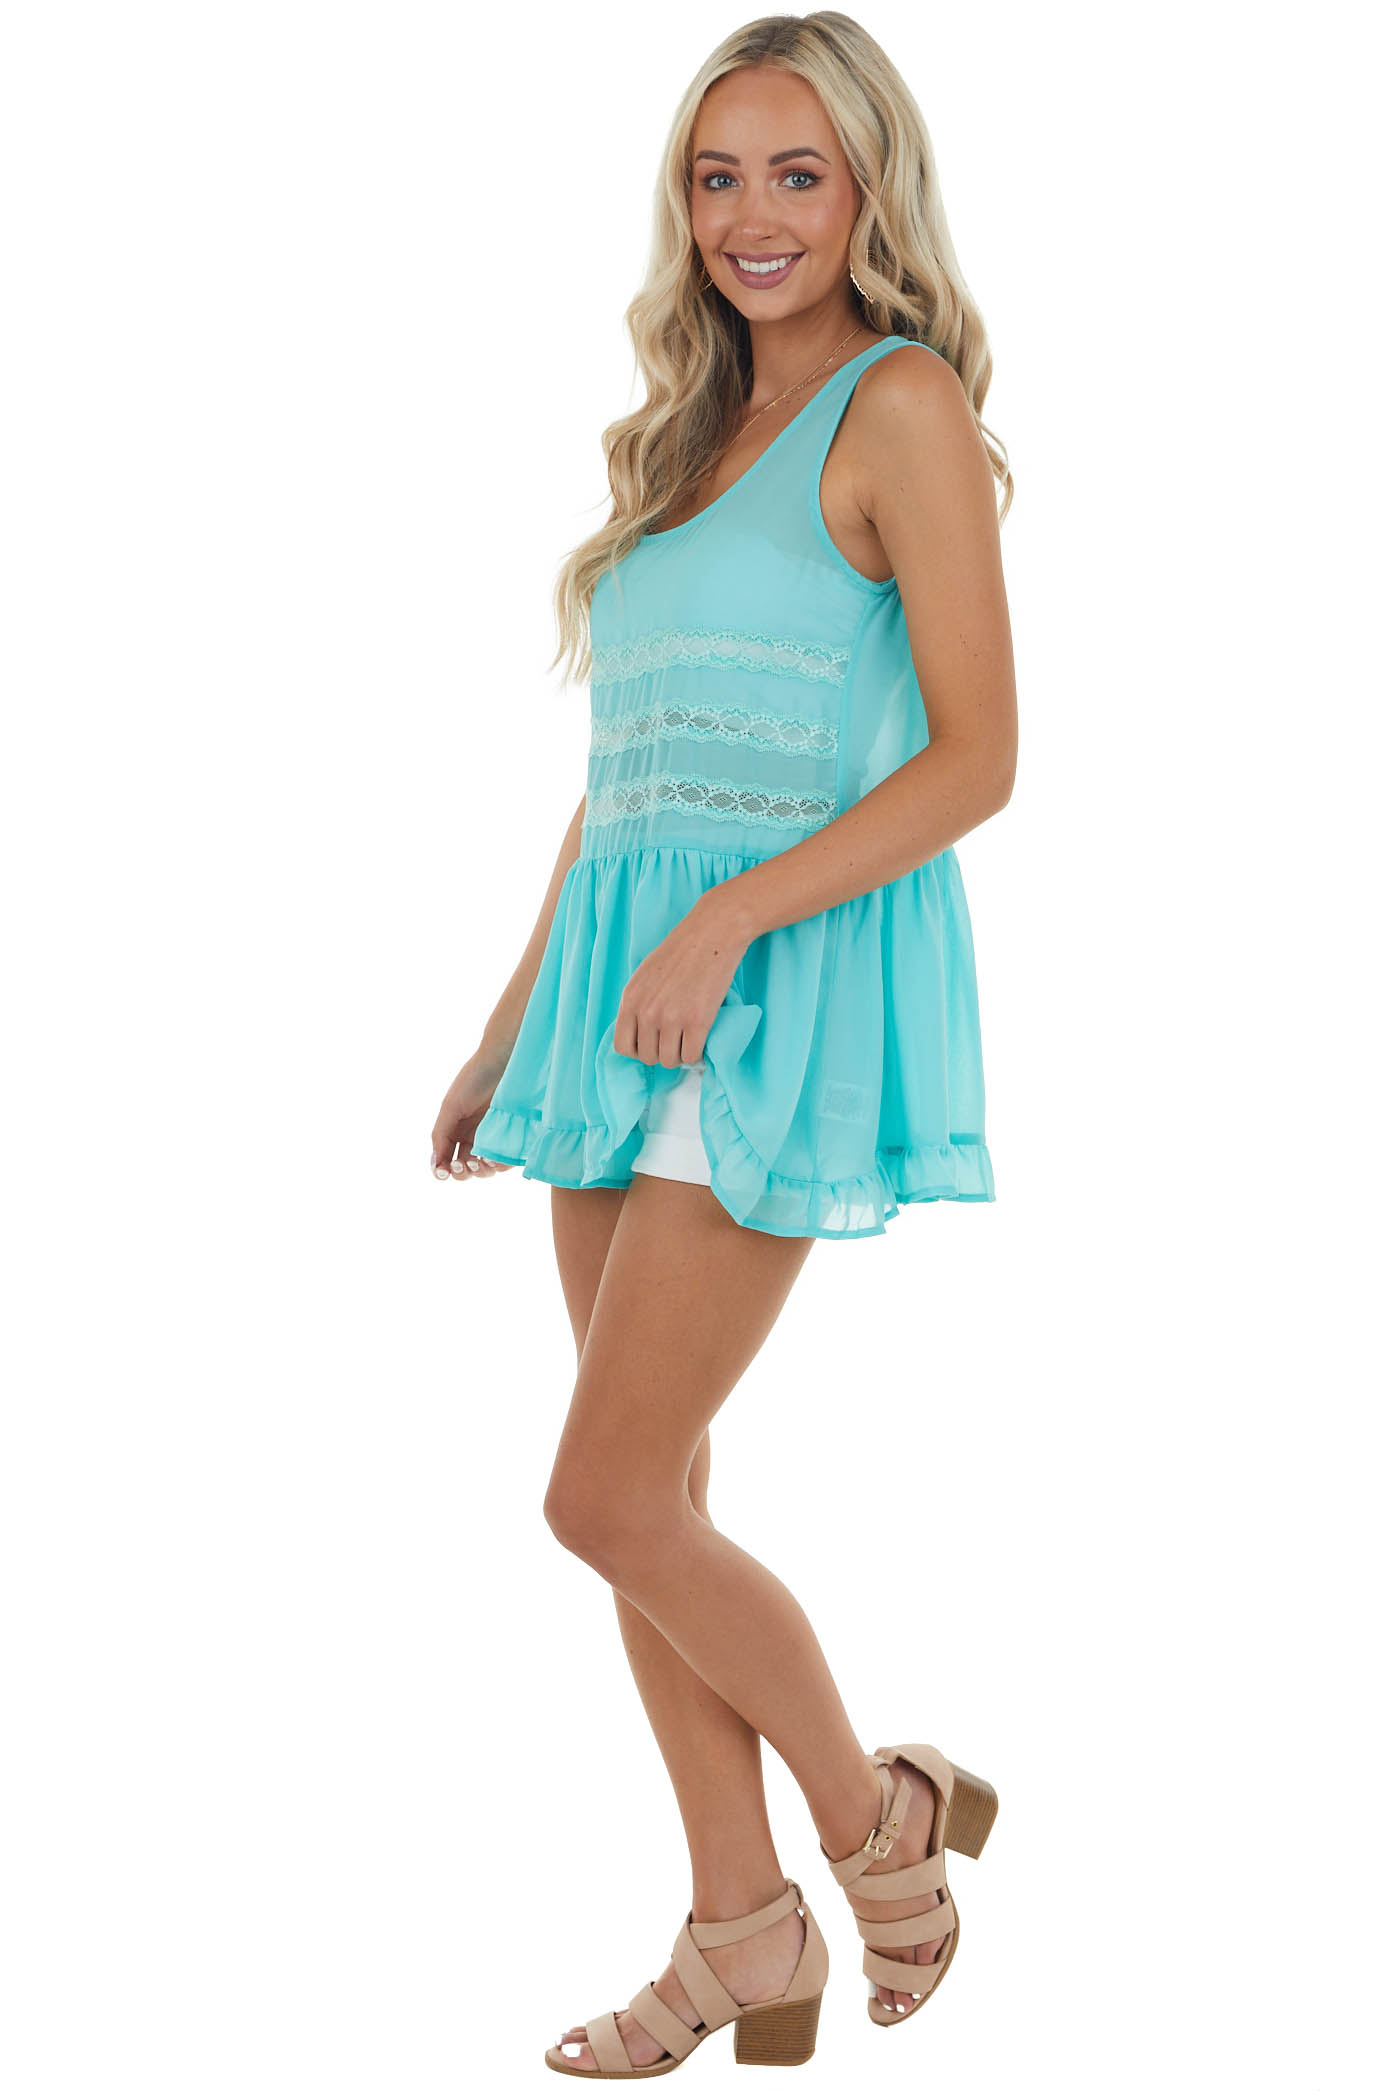 Turquoise Sleeveless Sheer Tank Top with Lace